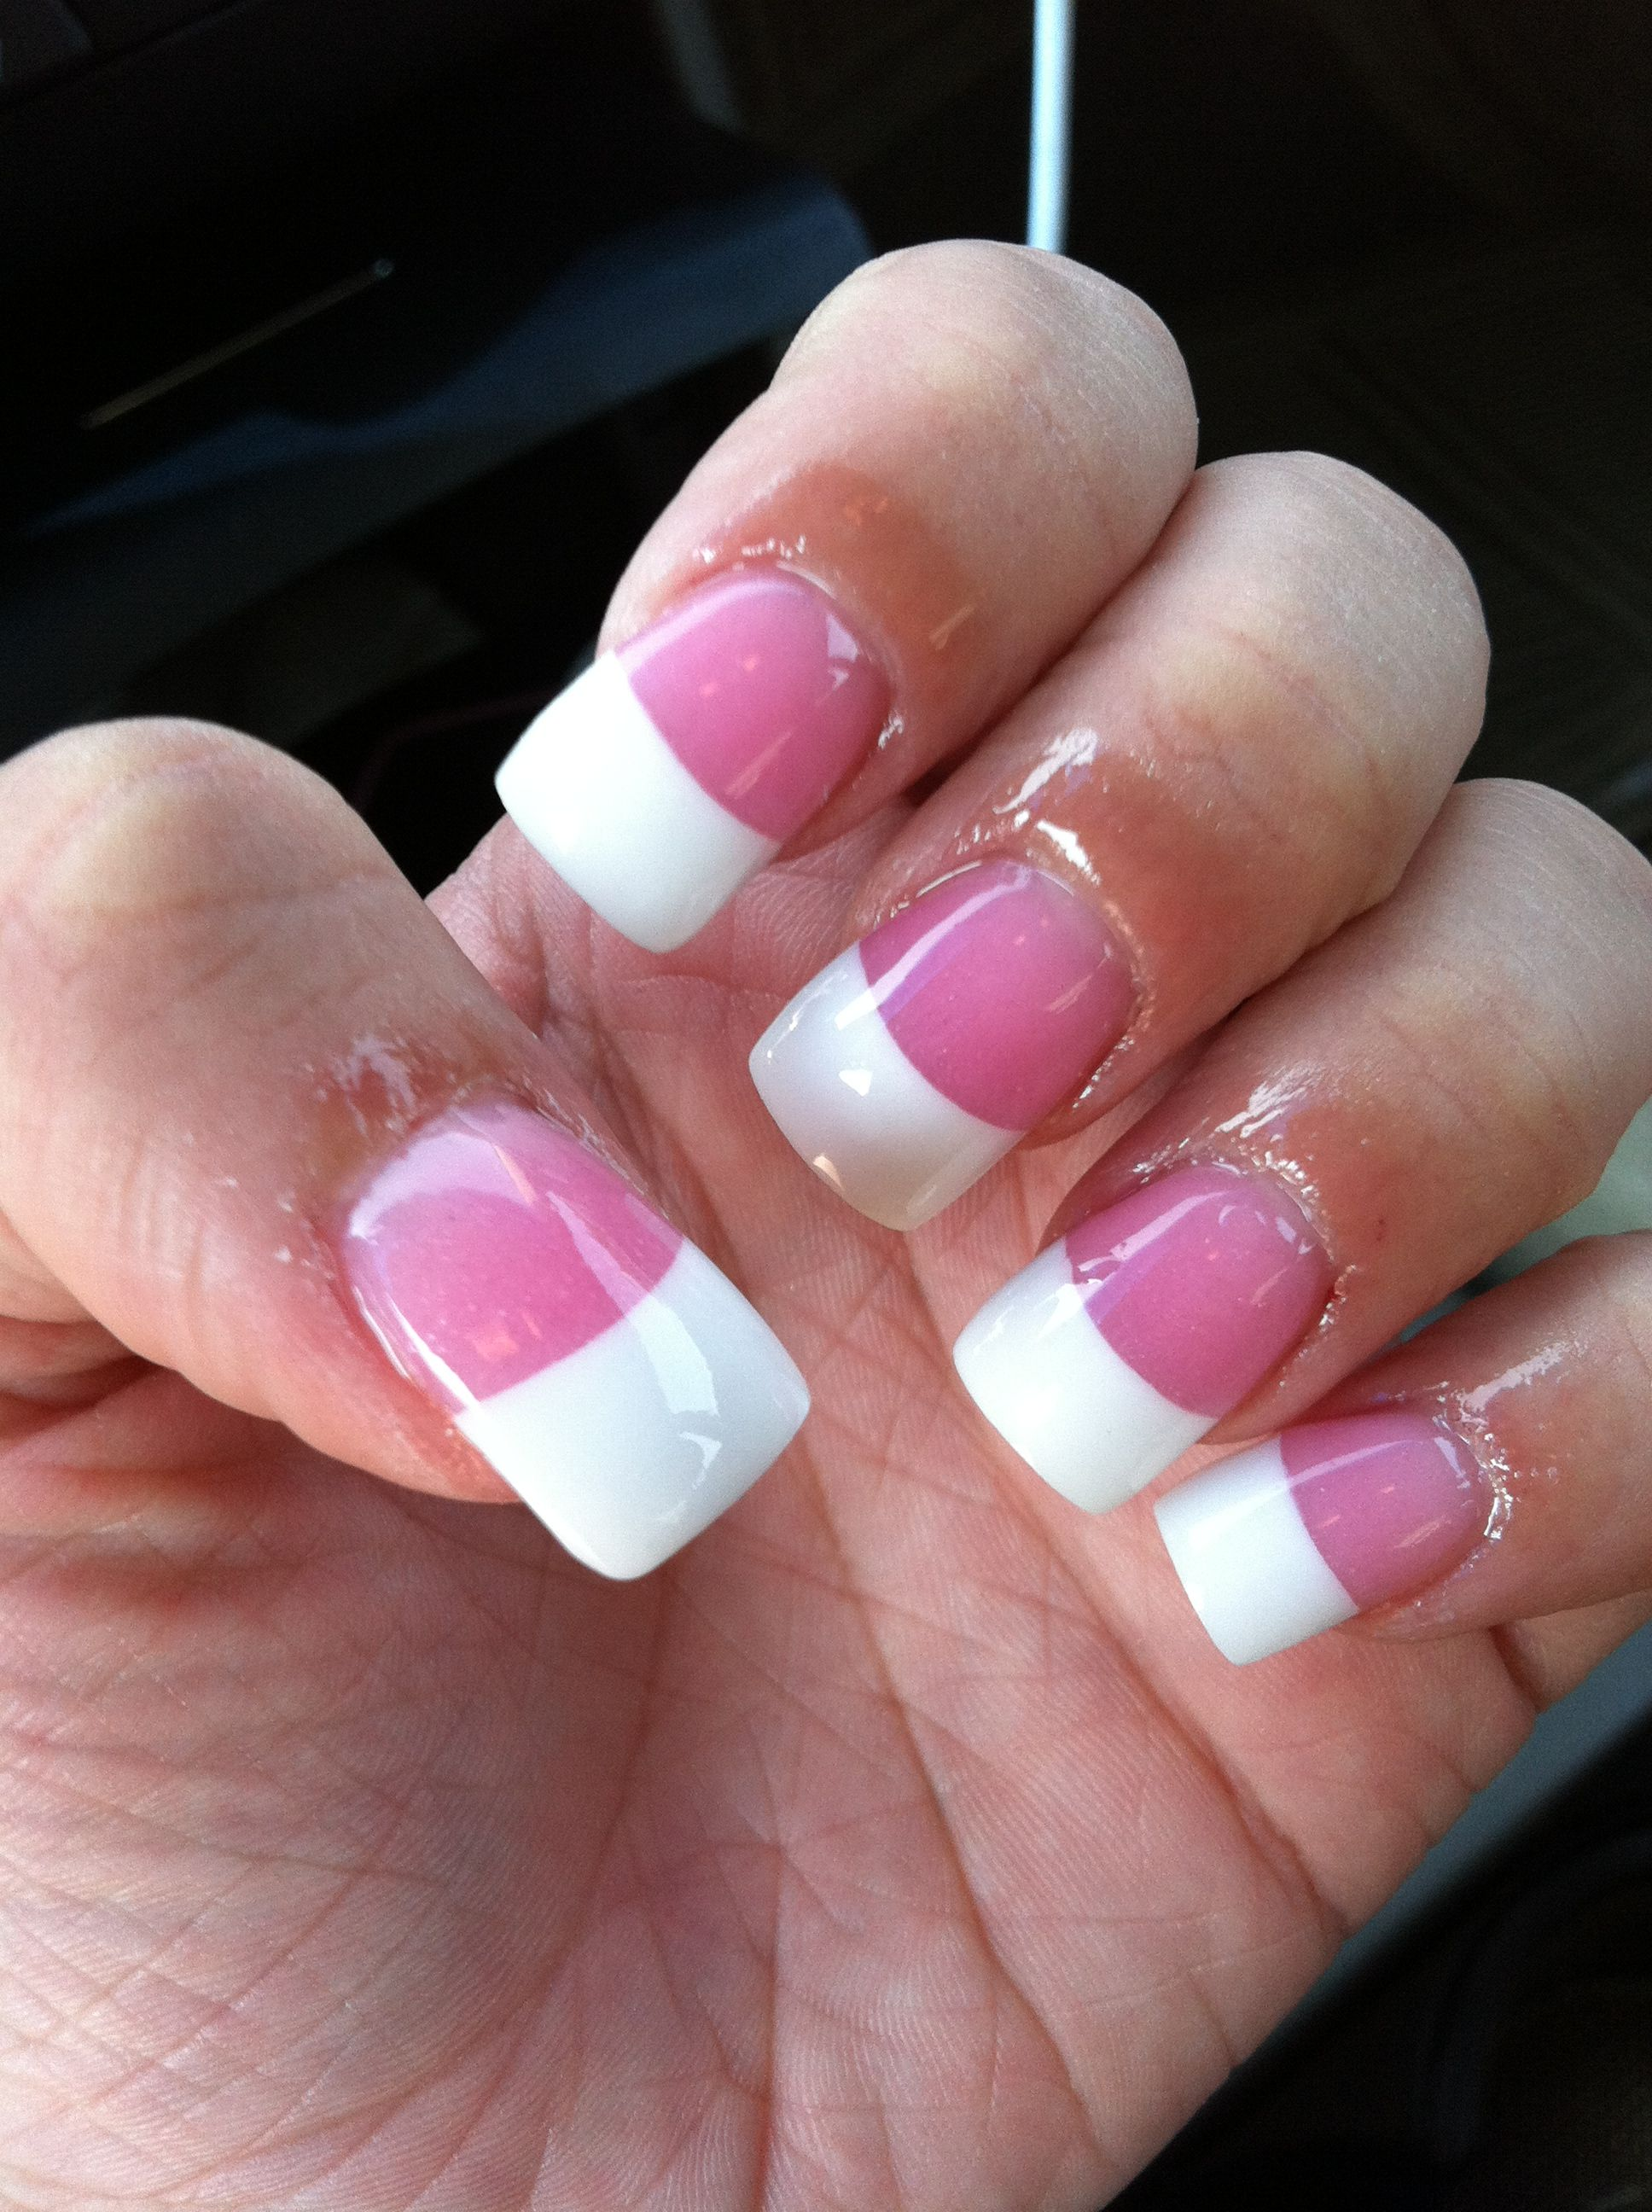 Medium Pink And White French Acrylics French Acrylic Nails French Acrylic Nail Designs Pink Nails